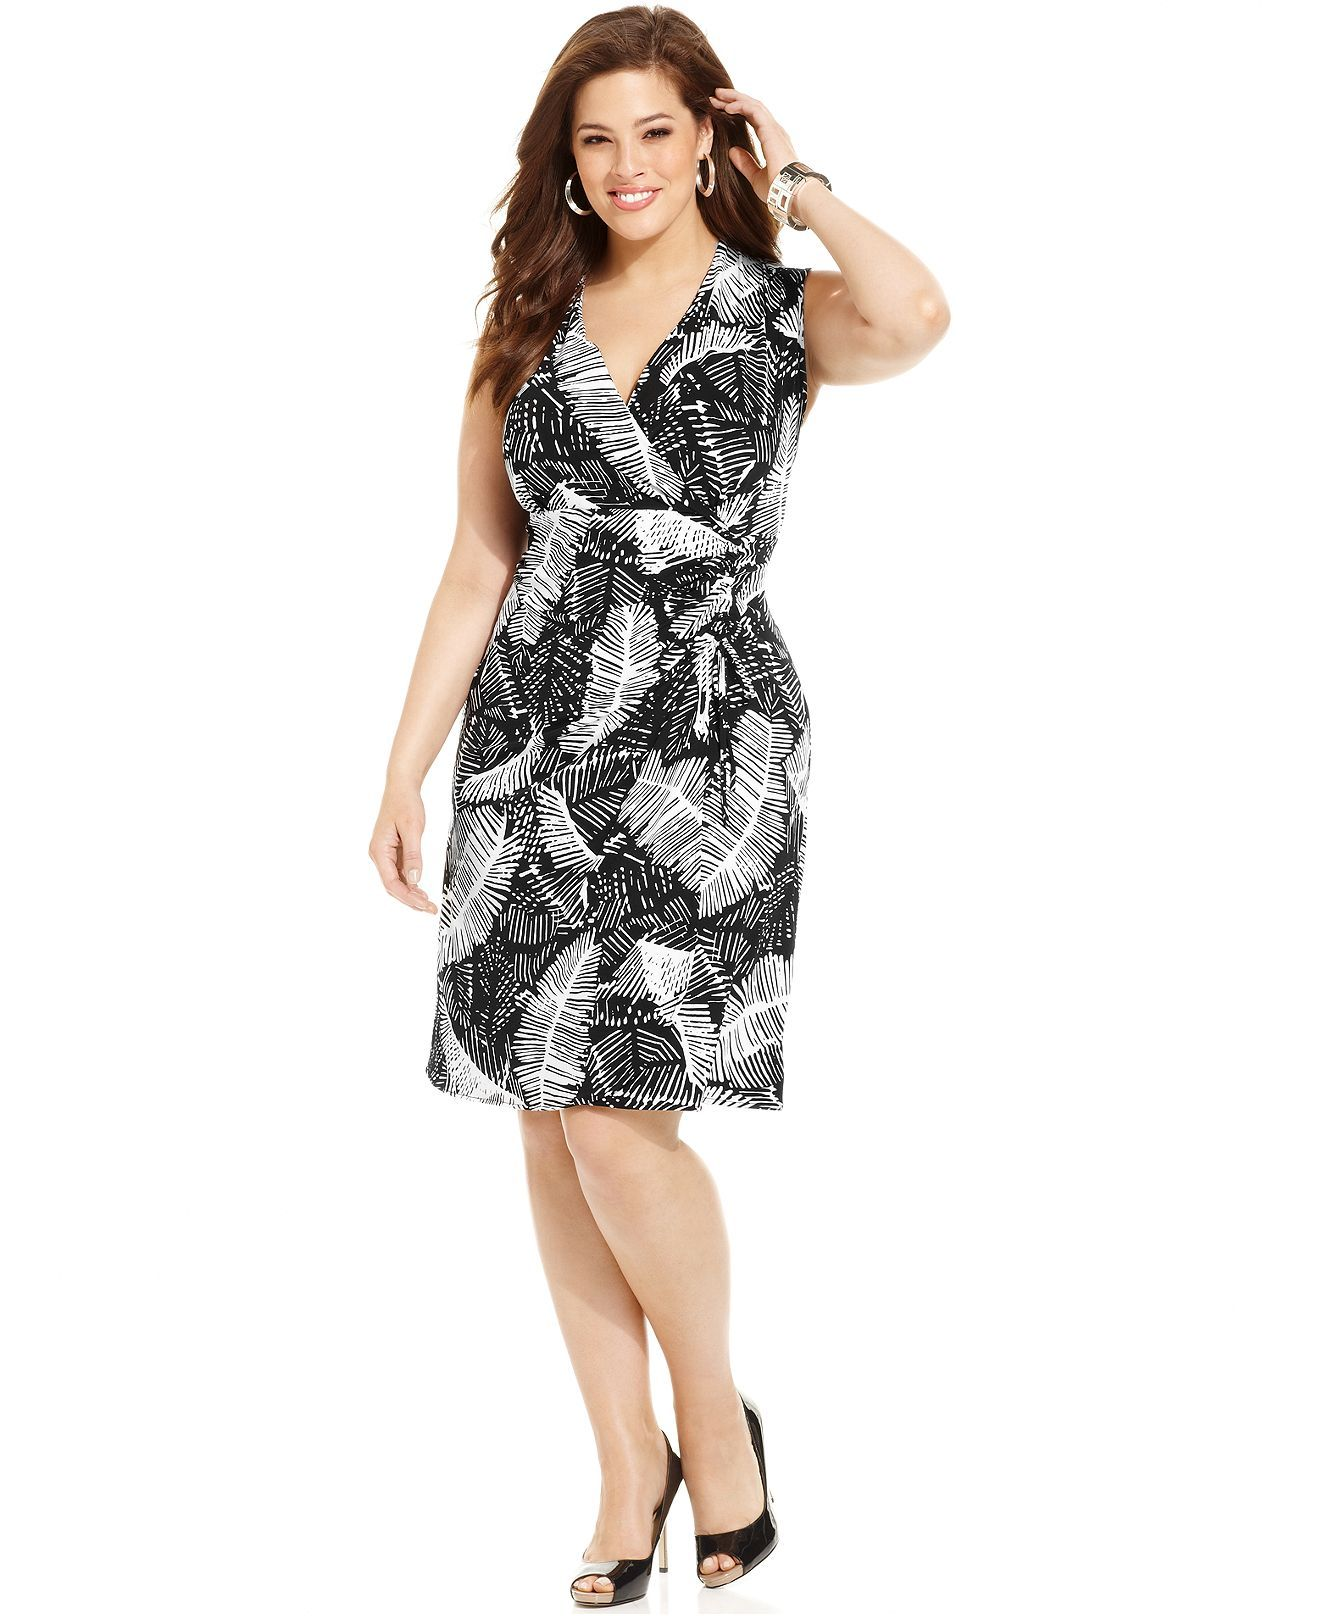 Jones New York Signature Plus Size Dress, Sleeveless Printed Wrap ...